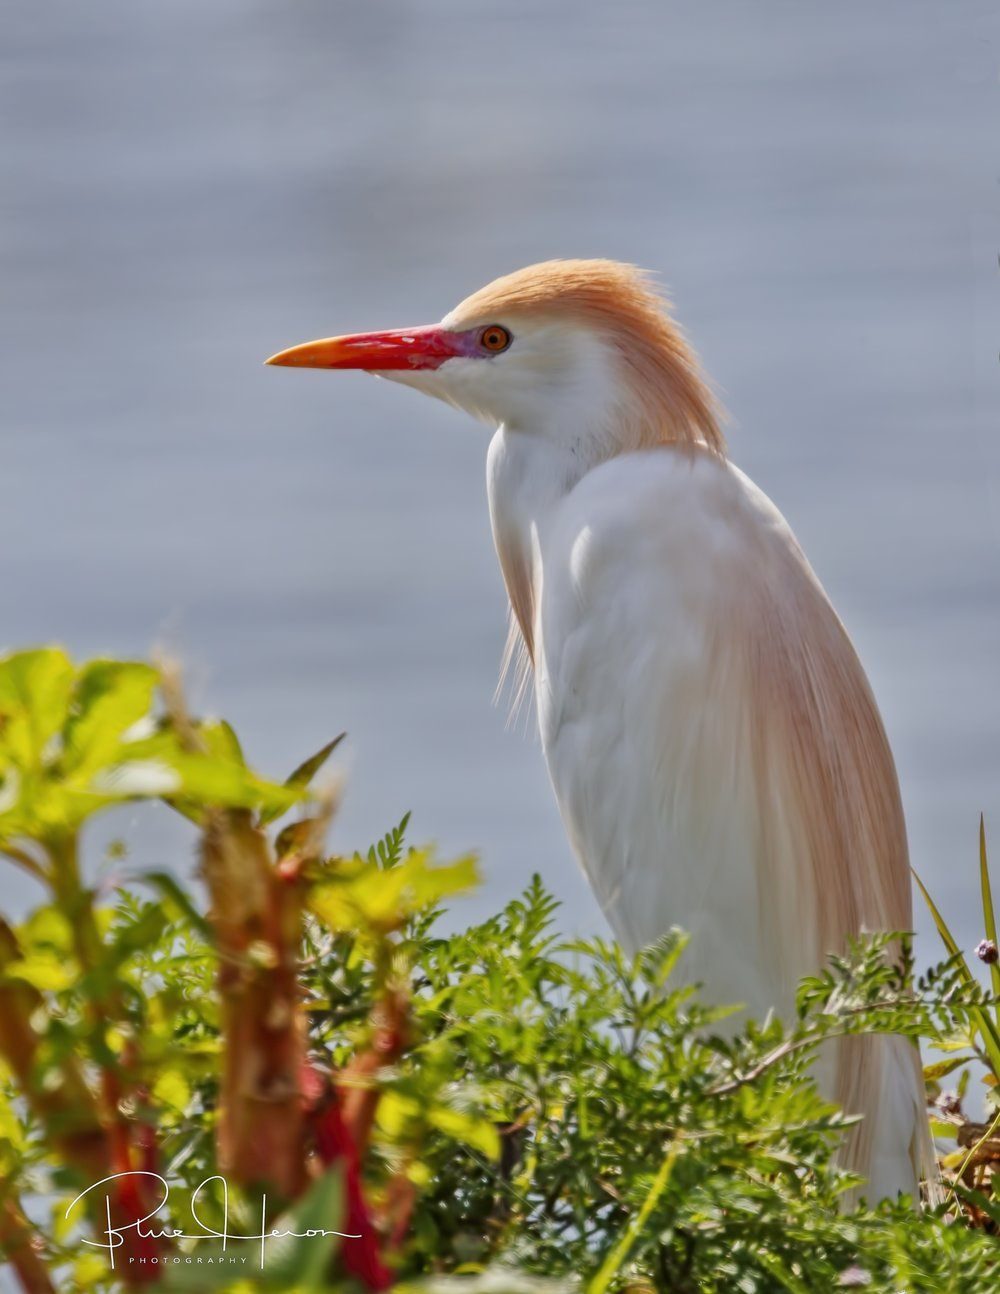 Some Cattle Egrets in breeding plumes are spotted too!